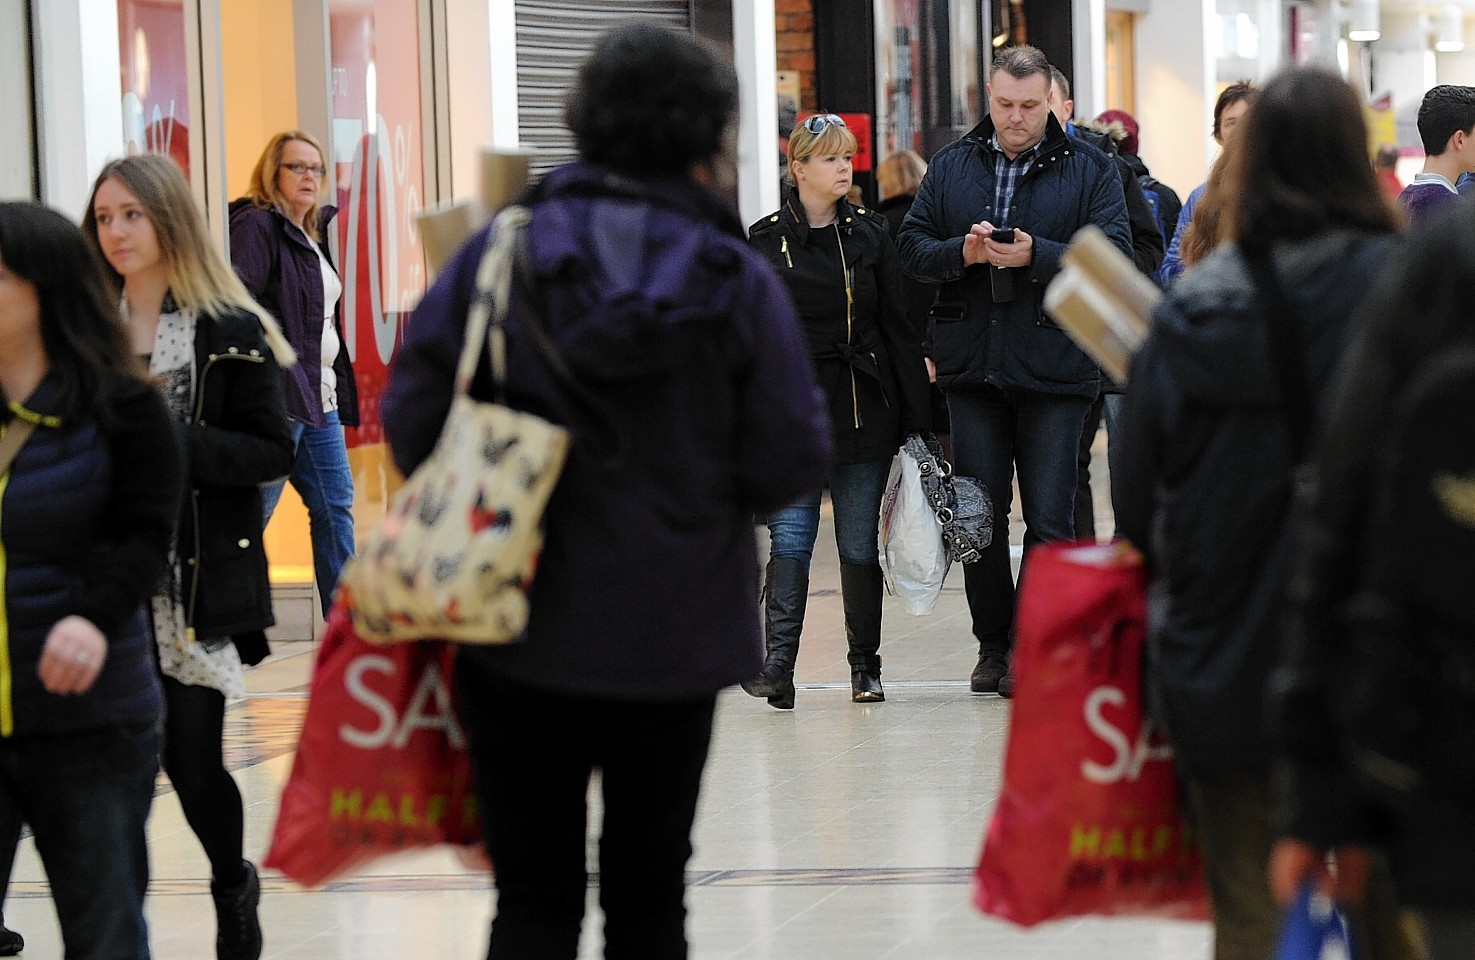 Boxing Day shoppers in the Eastgate Centre